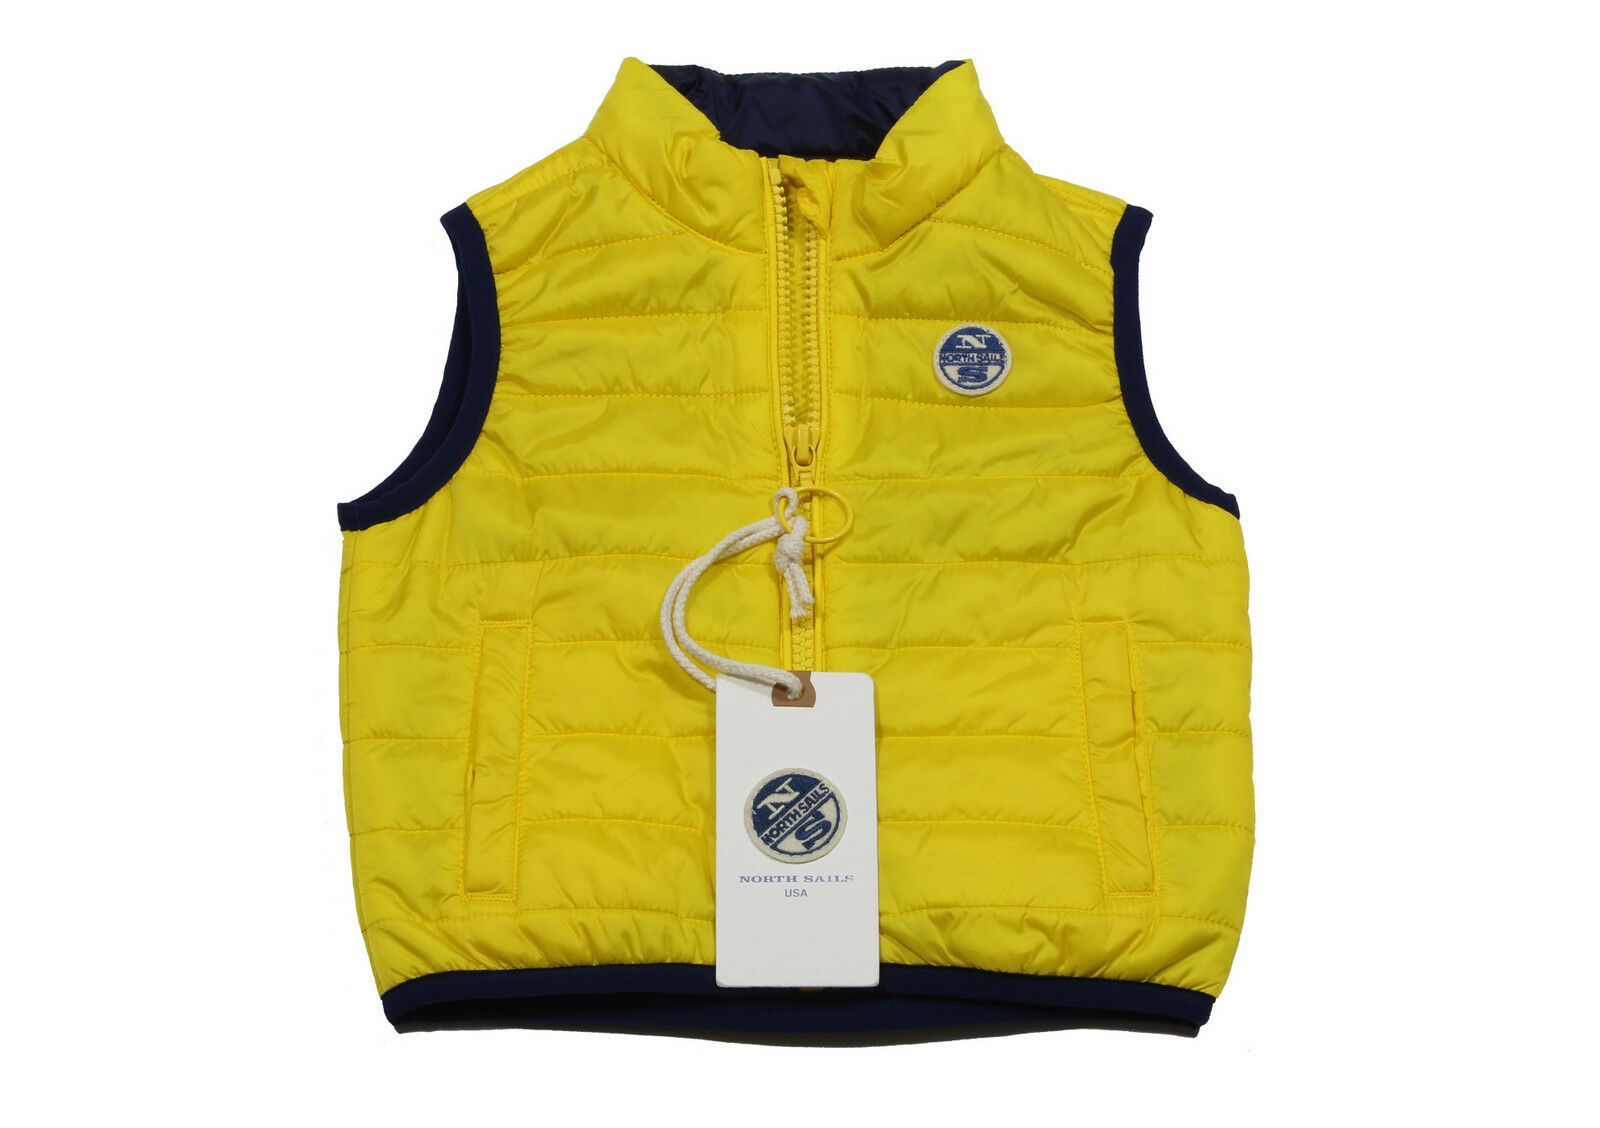 Gilet North Sails bambino frank junior